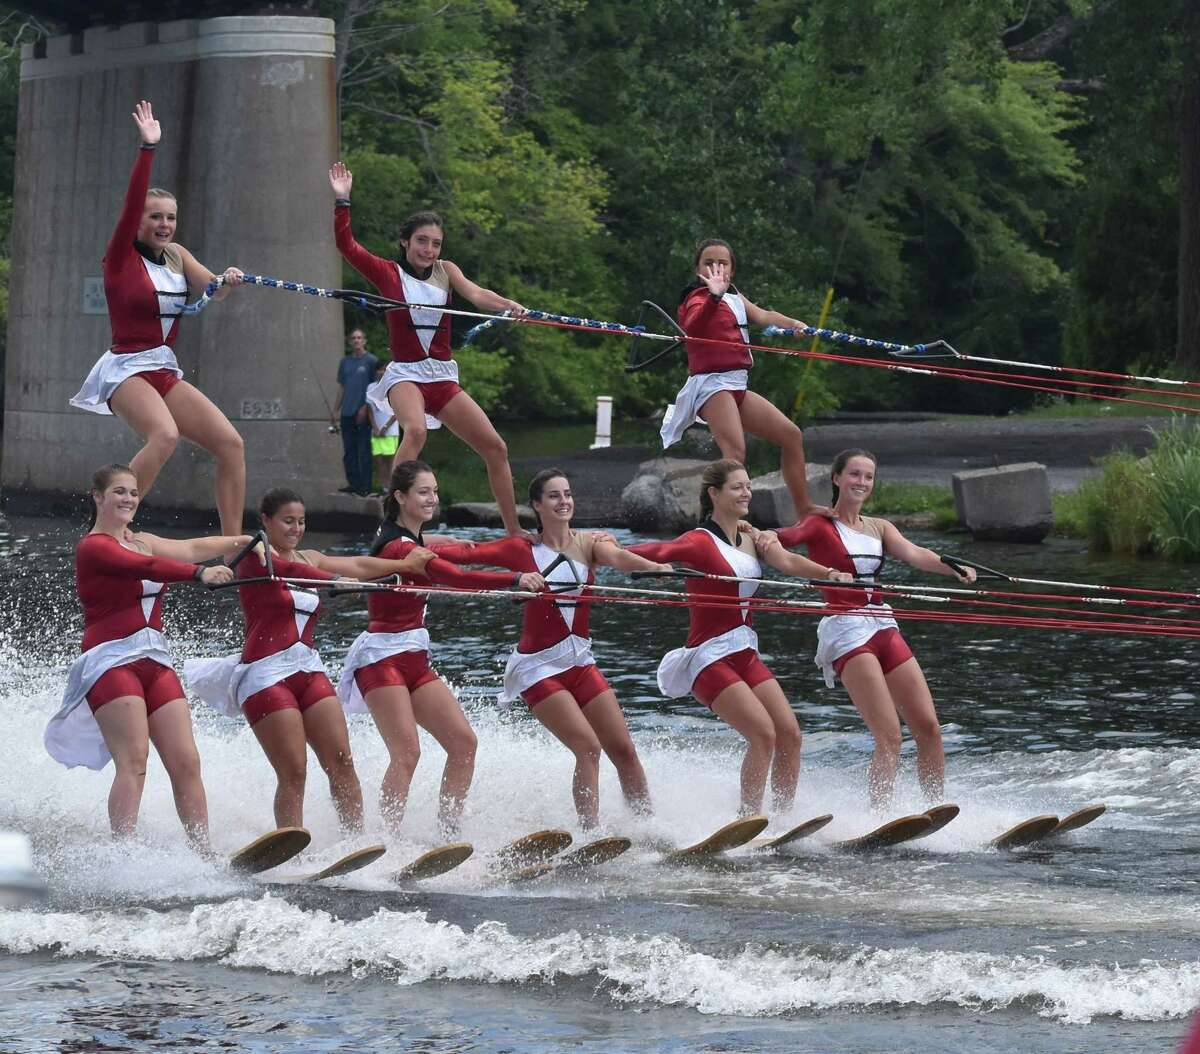 The X-Squad Water Ski Show Team girls from Scotia create a pyramid at Sylvan Beach, Oneida County earlier this month. (Clare Beretvas)